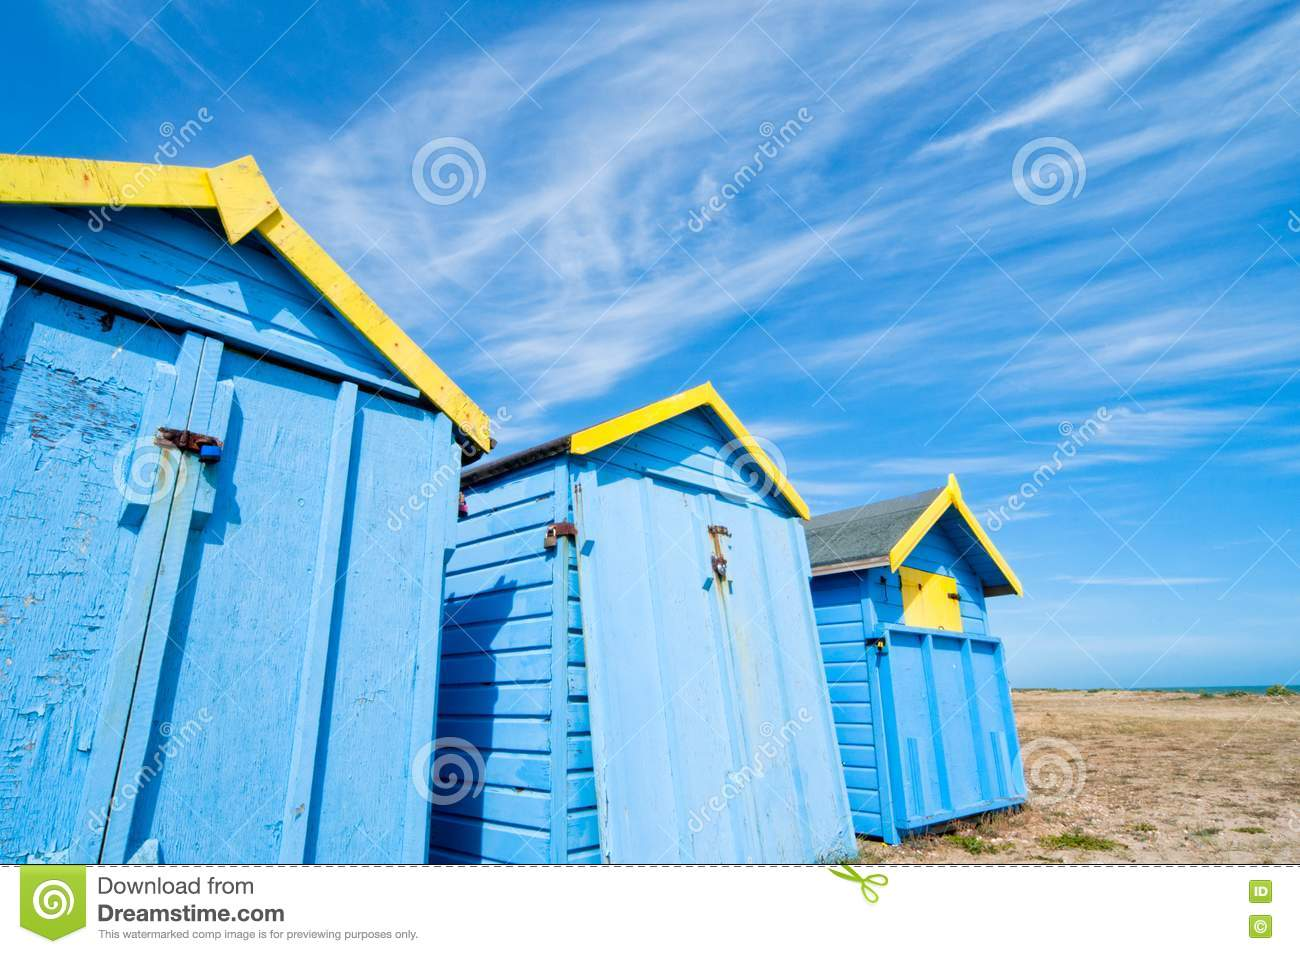 Summer Hut Designs : Blue Beach Huts In Summer Royalty Free Stock Photo - Image: 20076375